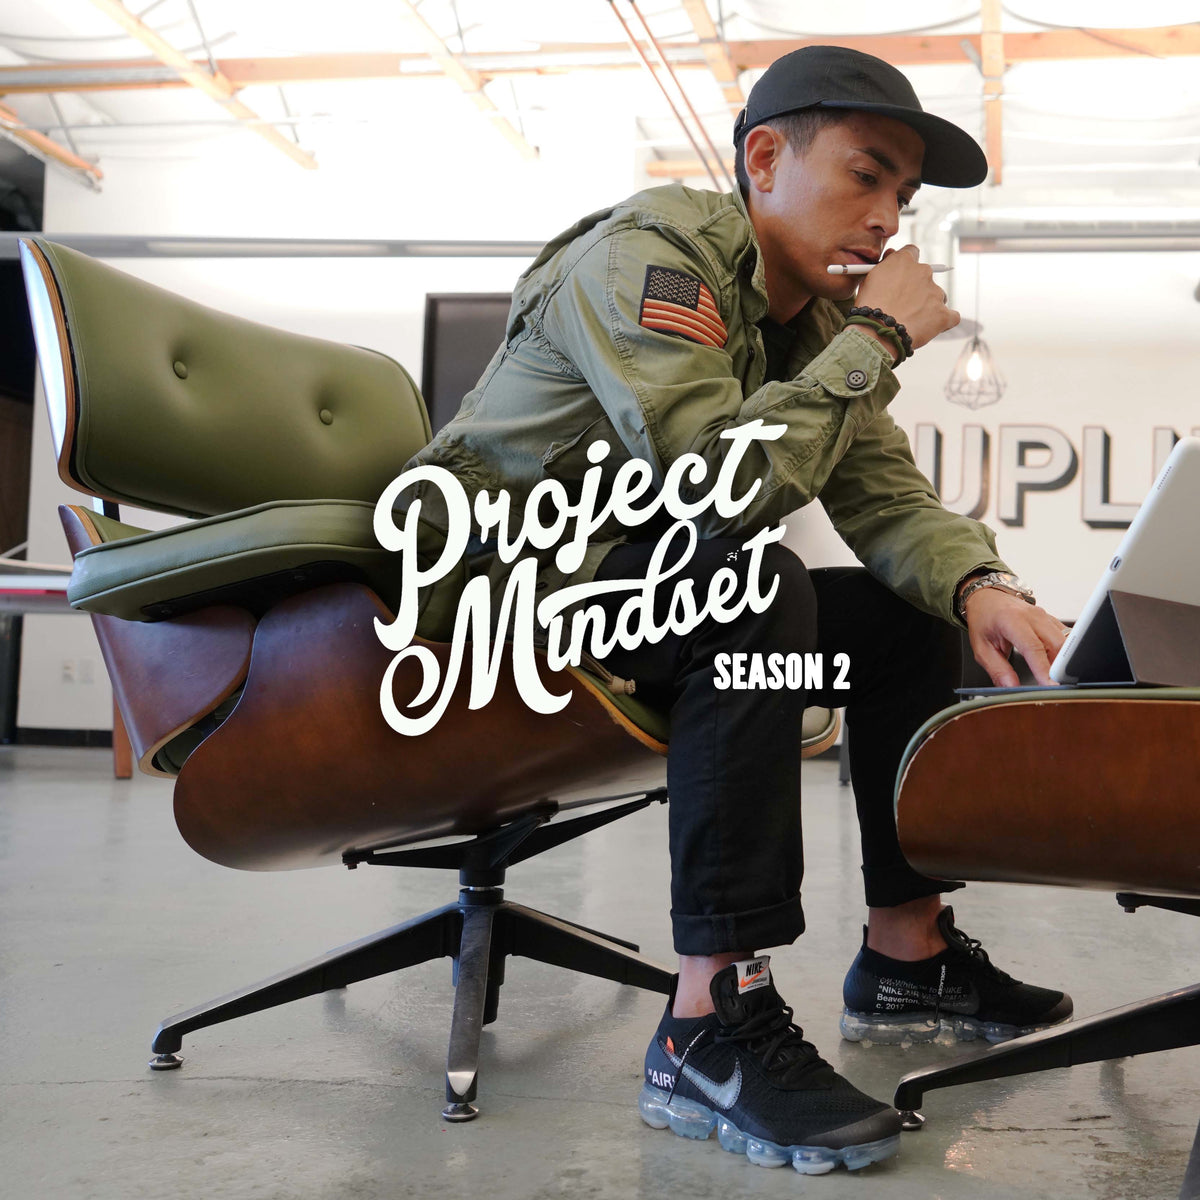 Keven Stirdivant planning his season 2 Project Mindset